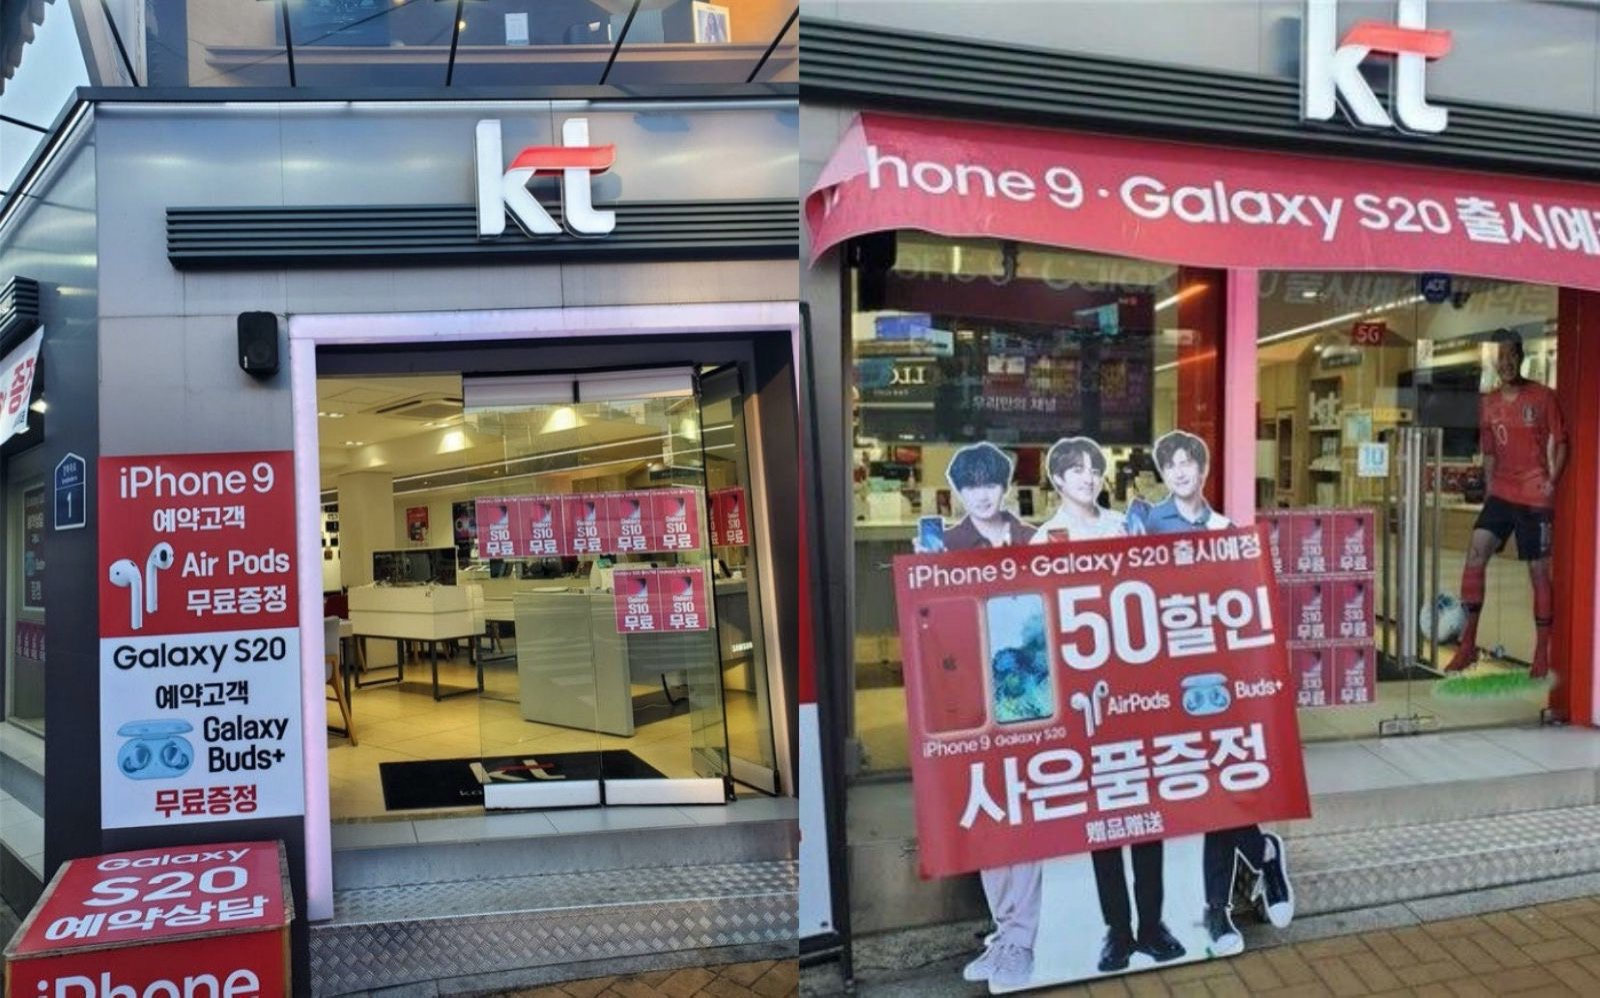 Korea Telecom Store getting ready for iphone9